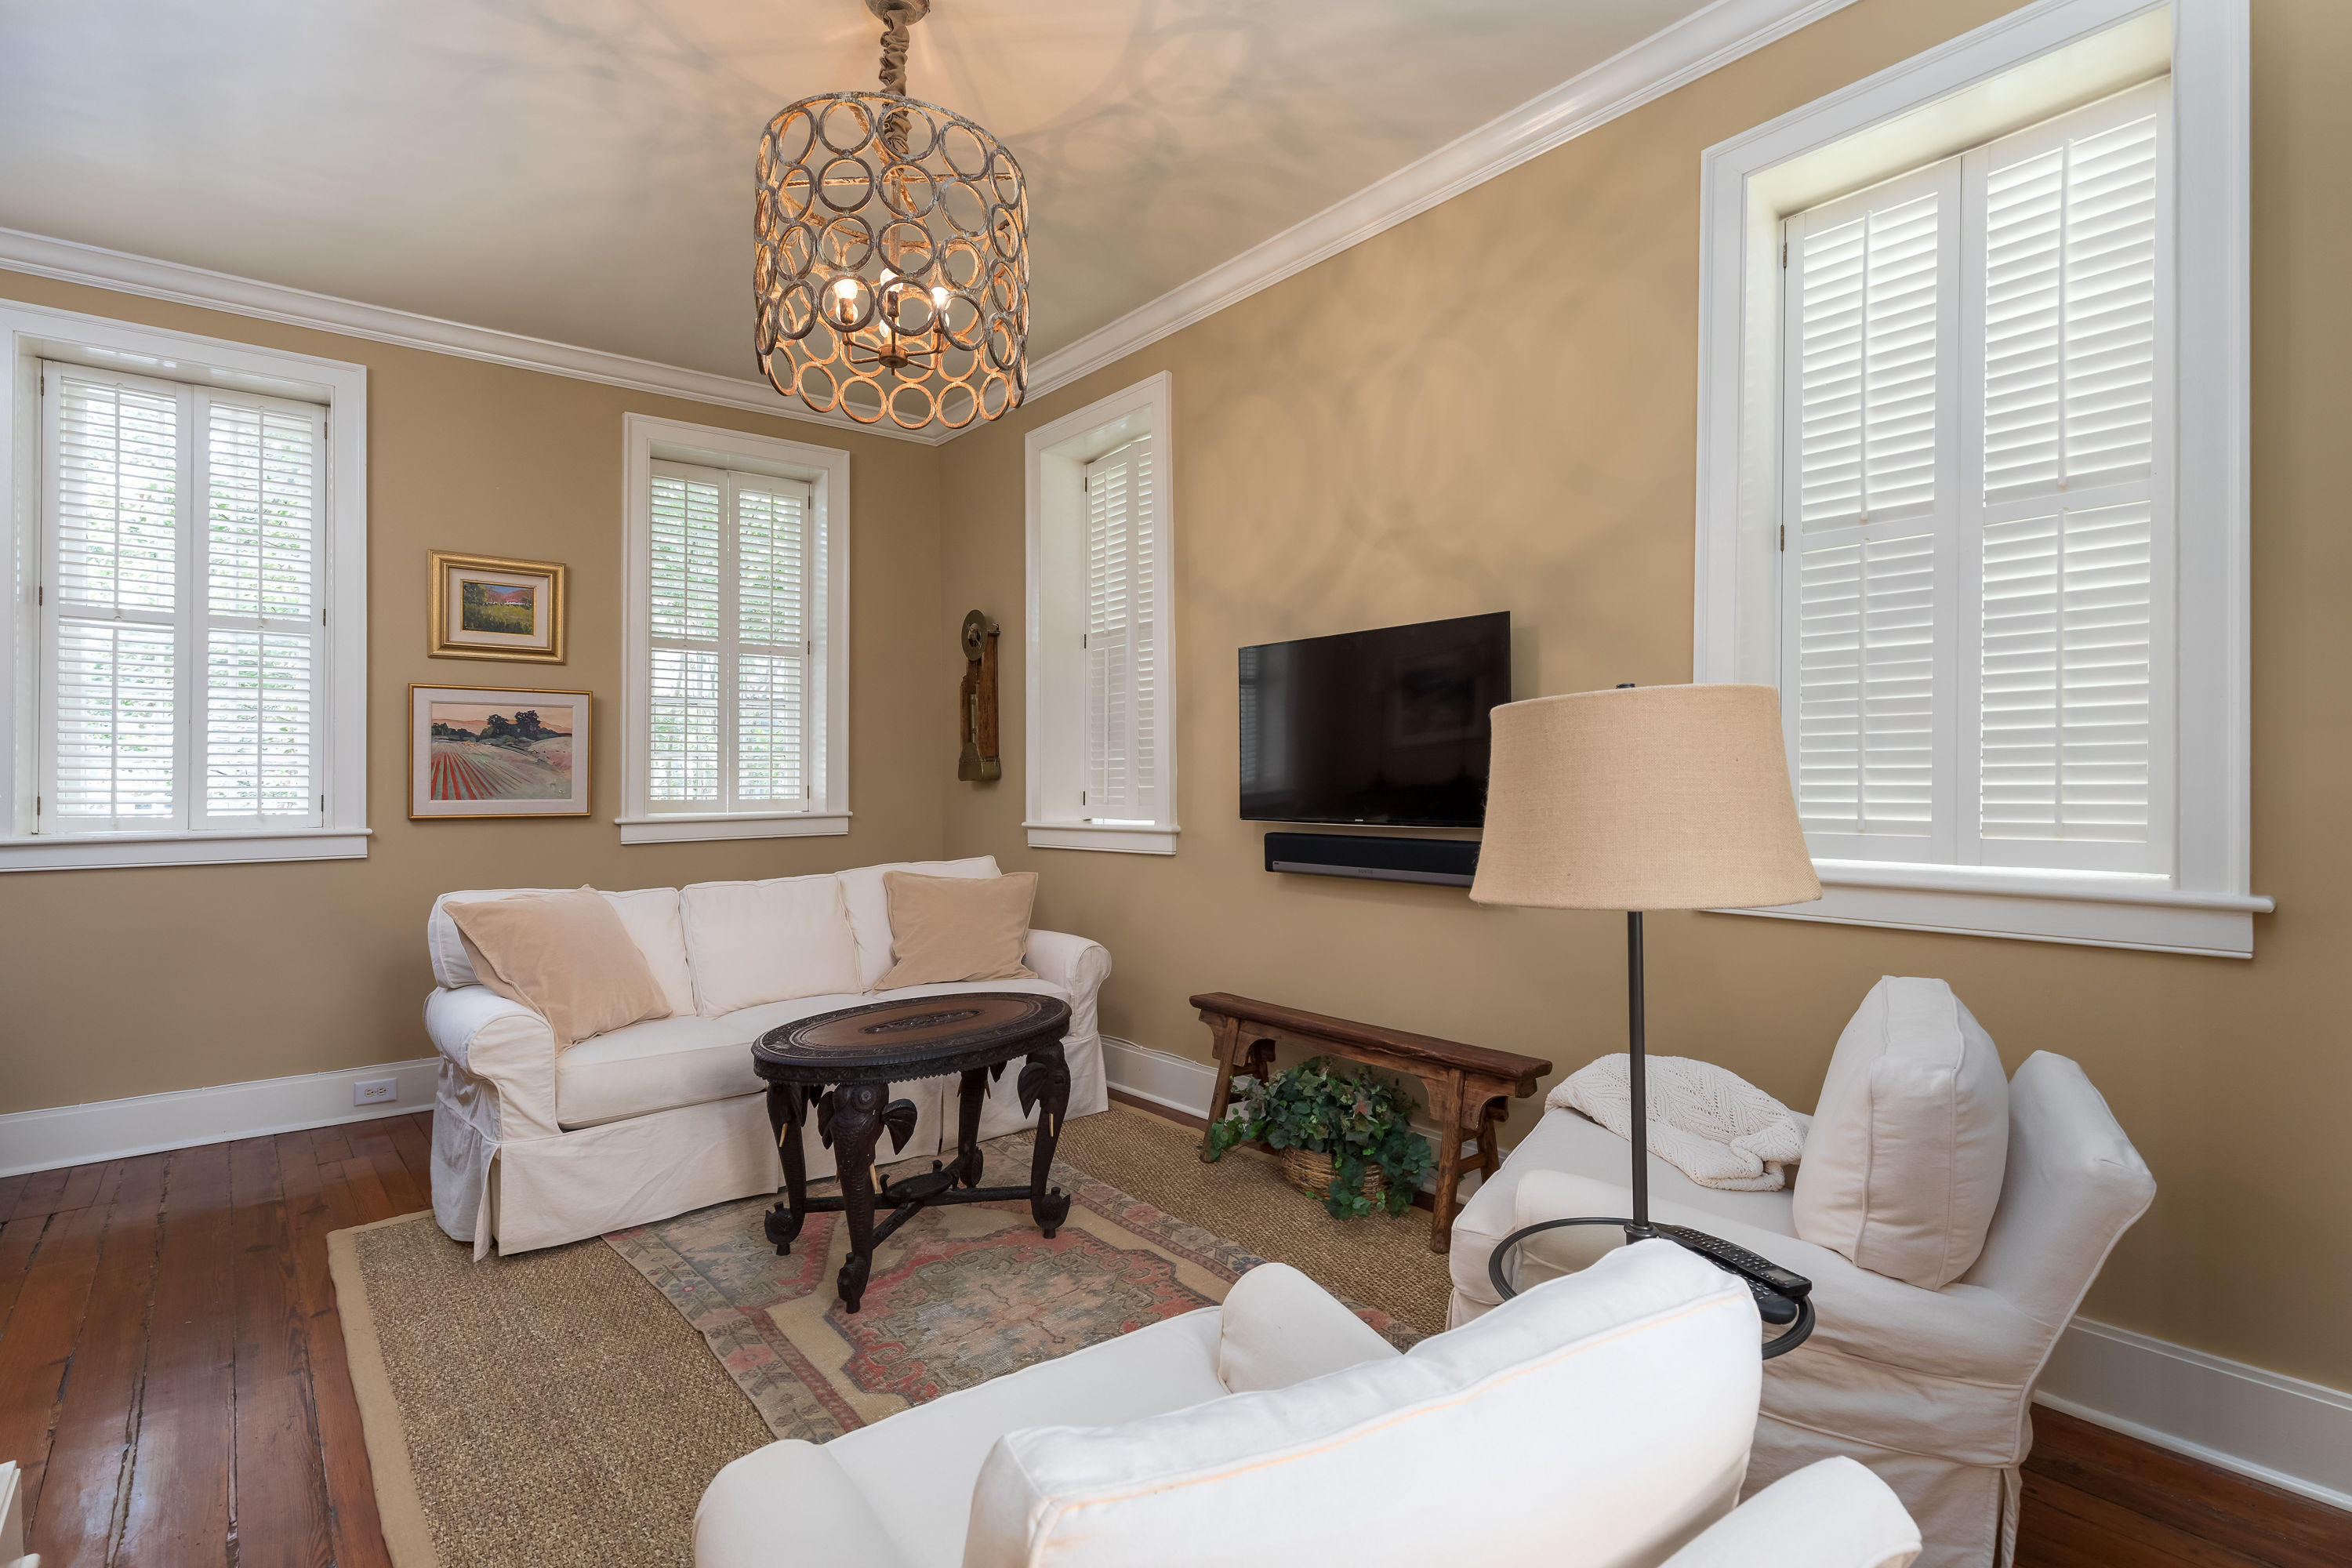 South of Broad Homes For Sale - 84 Church, Charleston, SC - 4